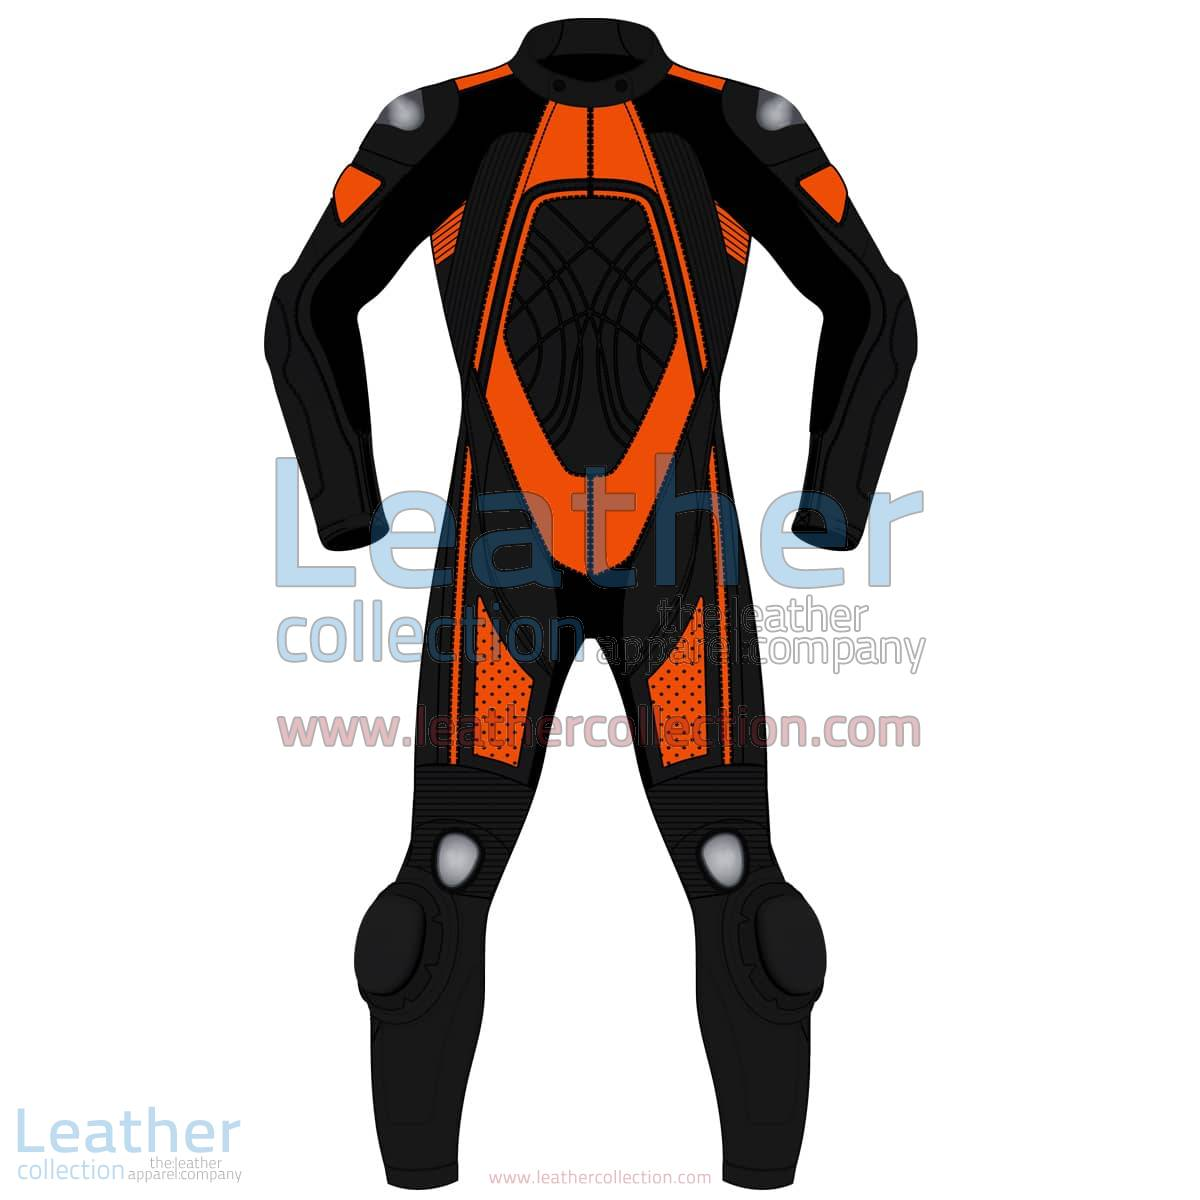 Bi Color One-Piece Motorbike Leather Suit For Men | Bi Color One-Piece motorcycle Leather Suit For Men